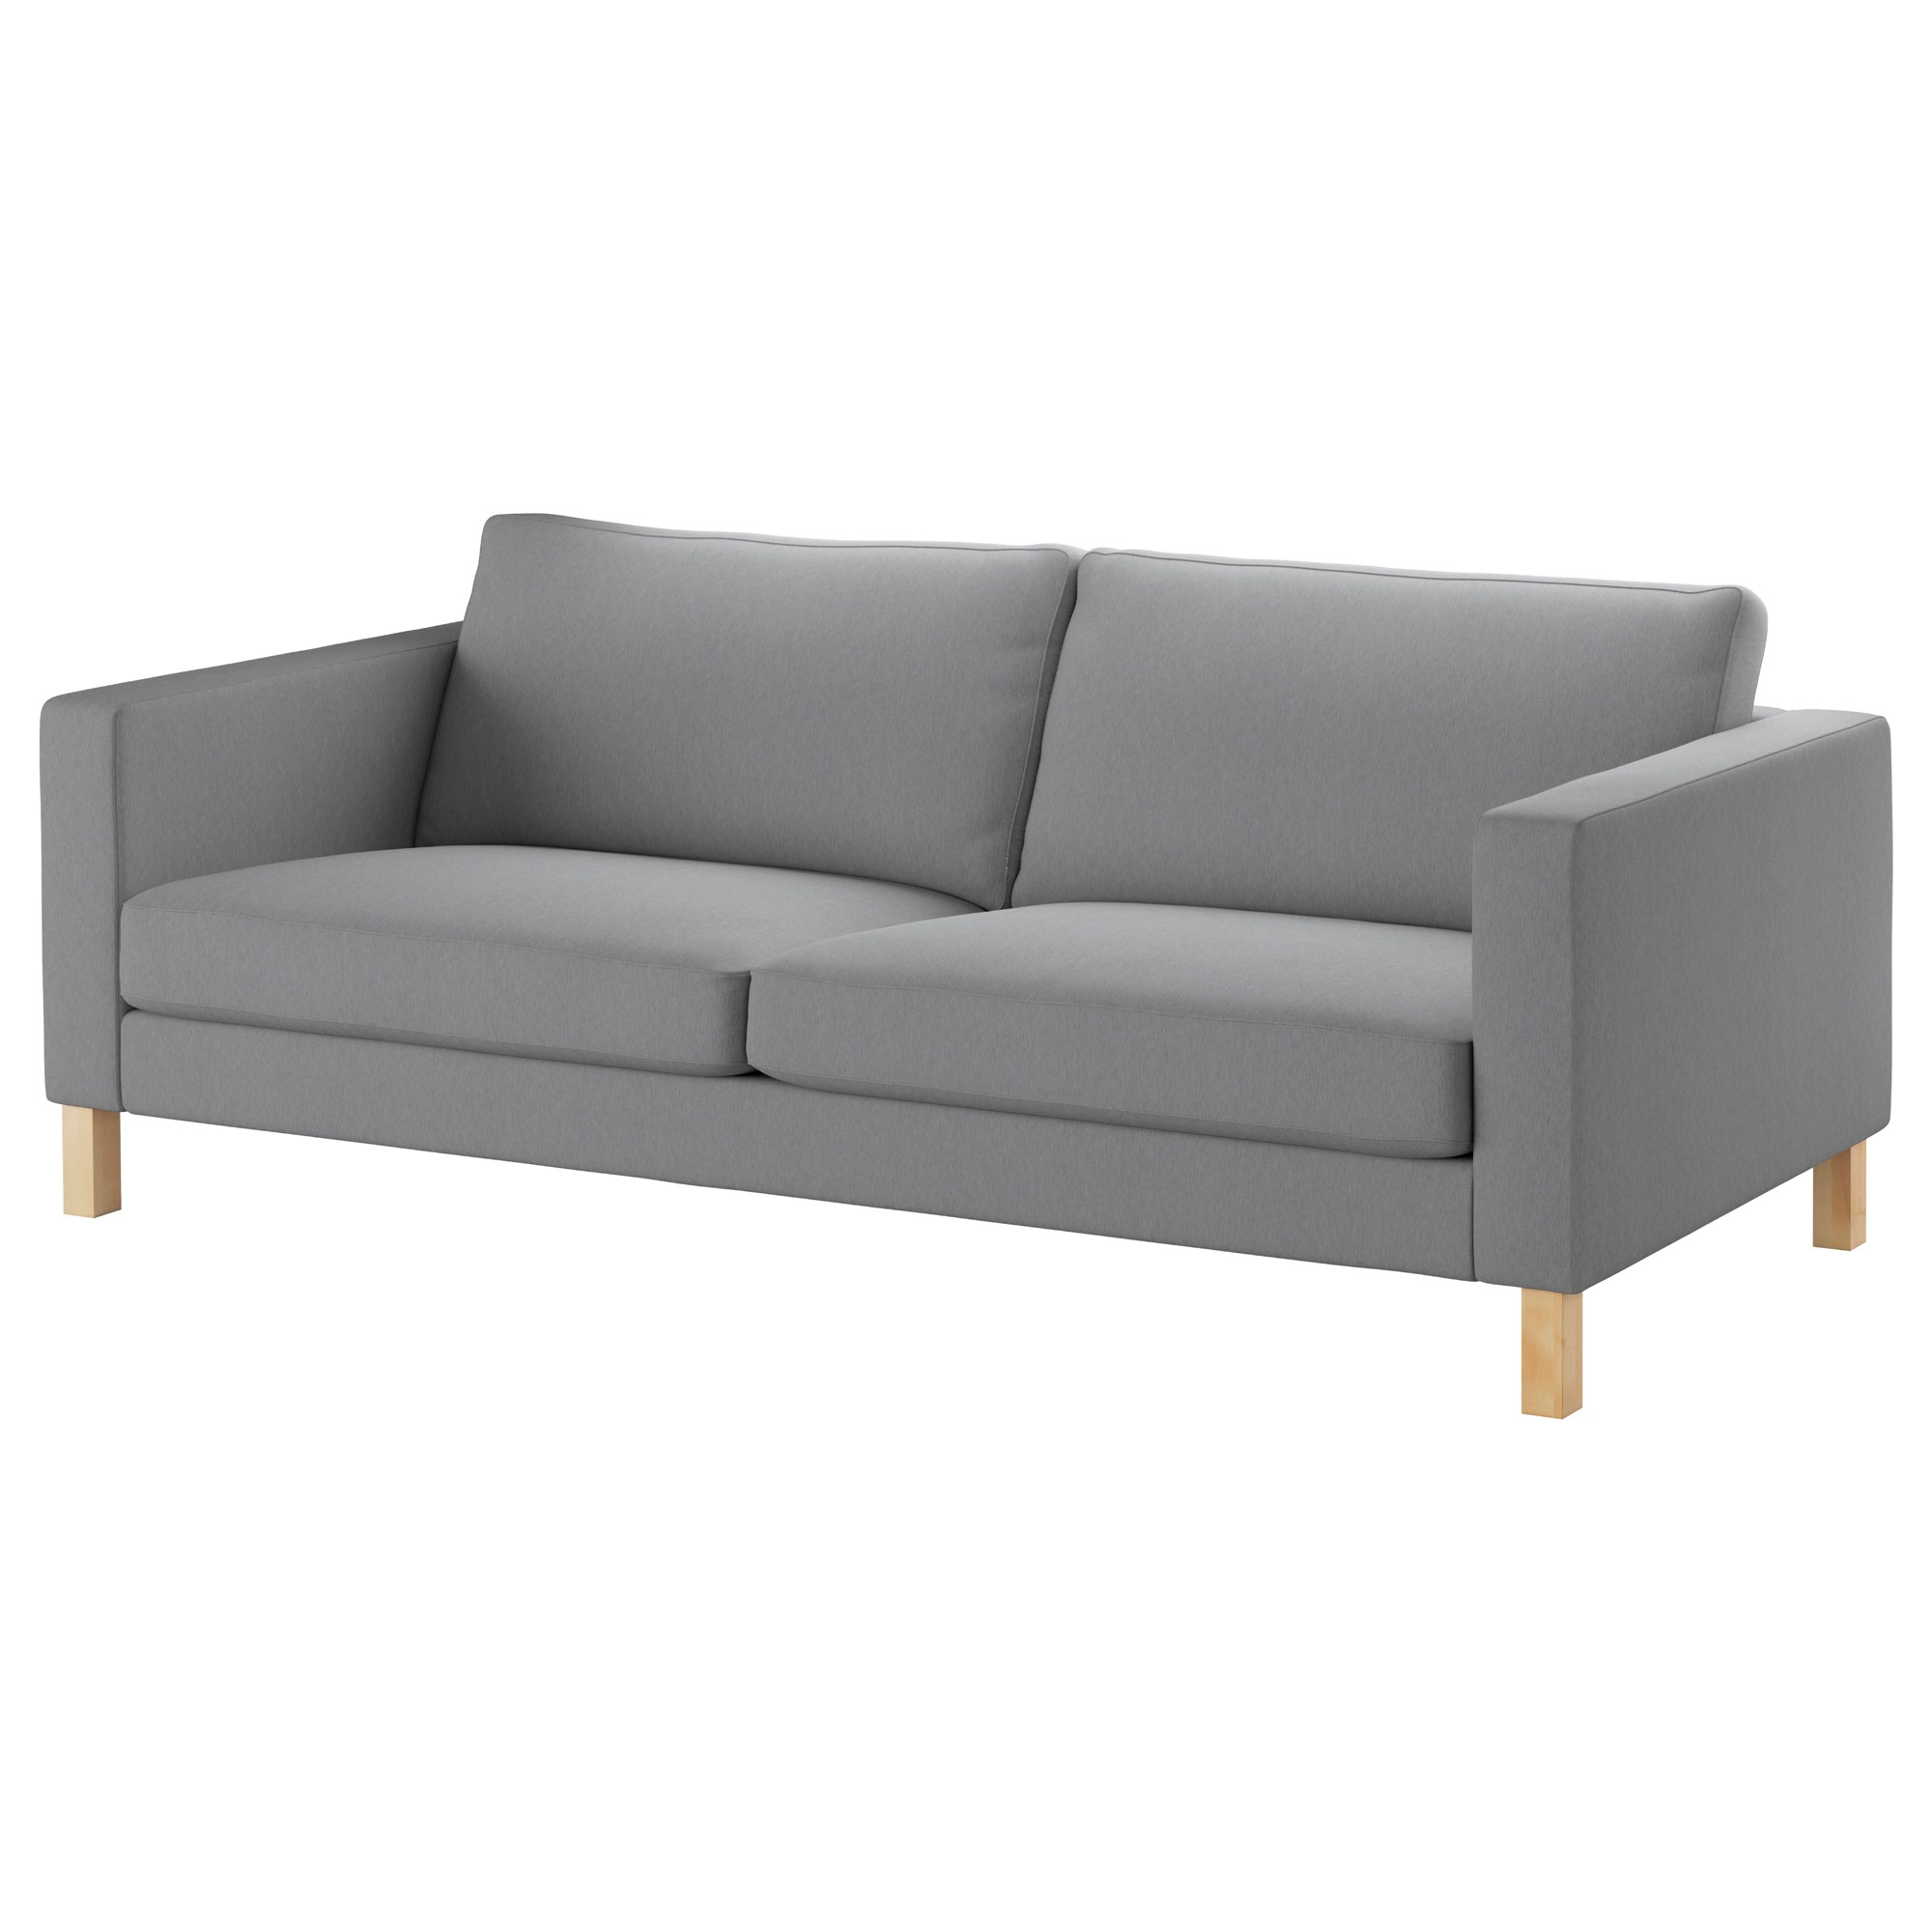 Couch Ikea Karlstad Sofa Knisa Light Gray